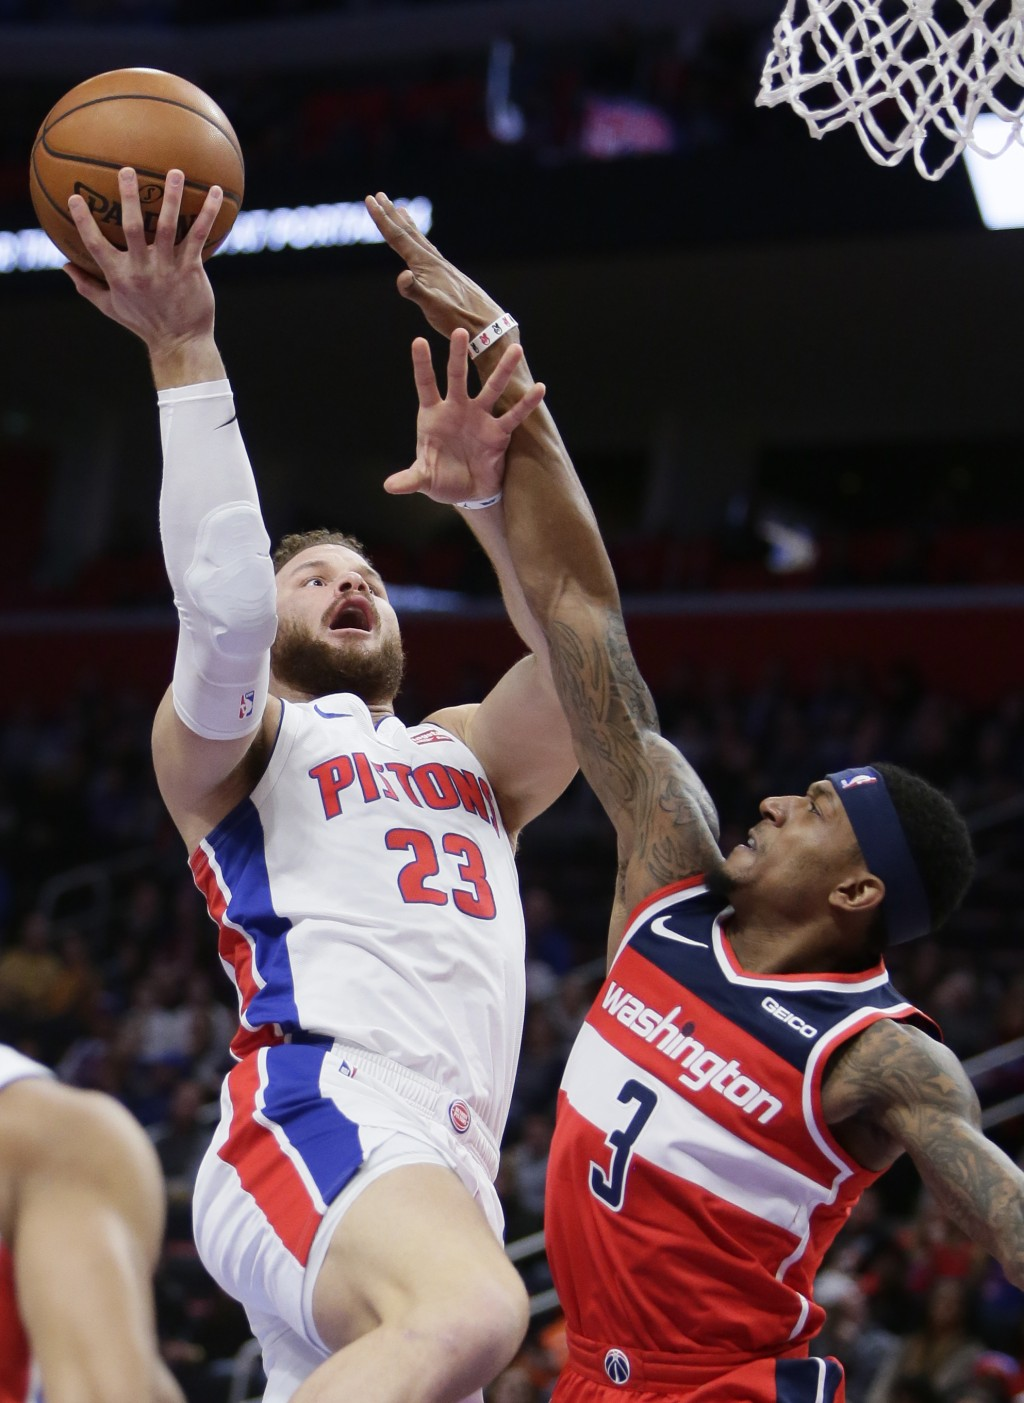 Detroit Pistons forward Blake Griffin (23) goes to the basket against Washington Wizards guard Bradley Beal (3) during the first half of an NBA basket